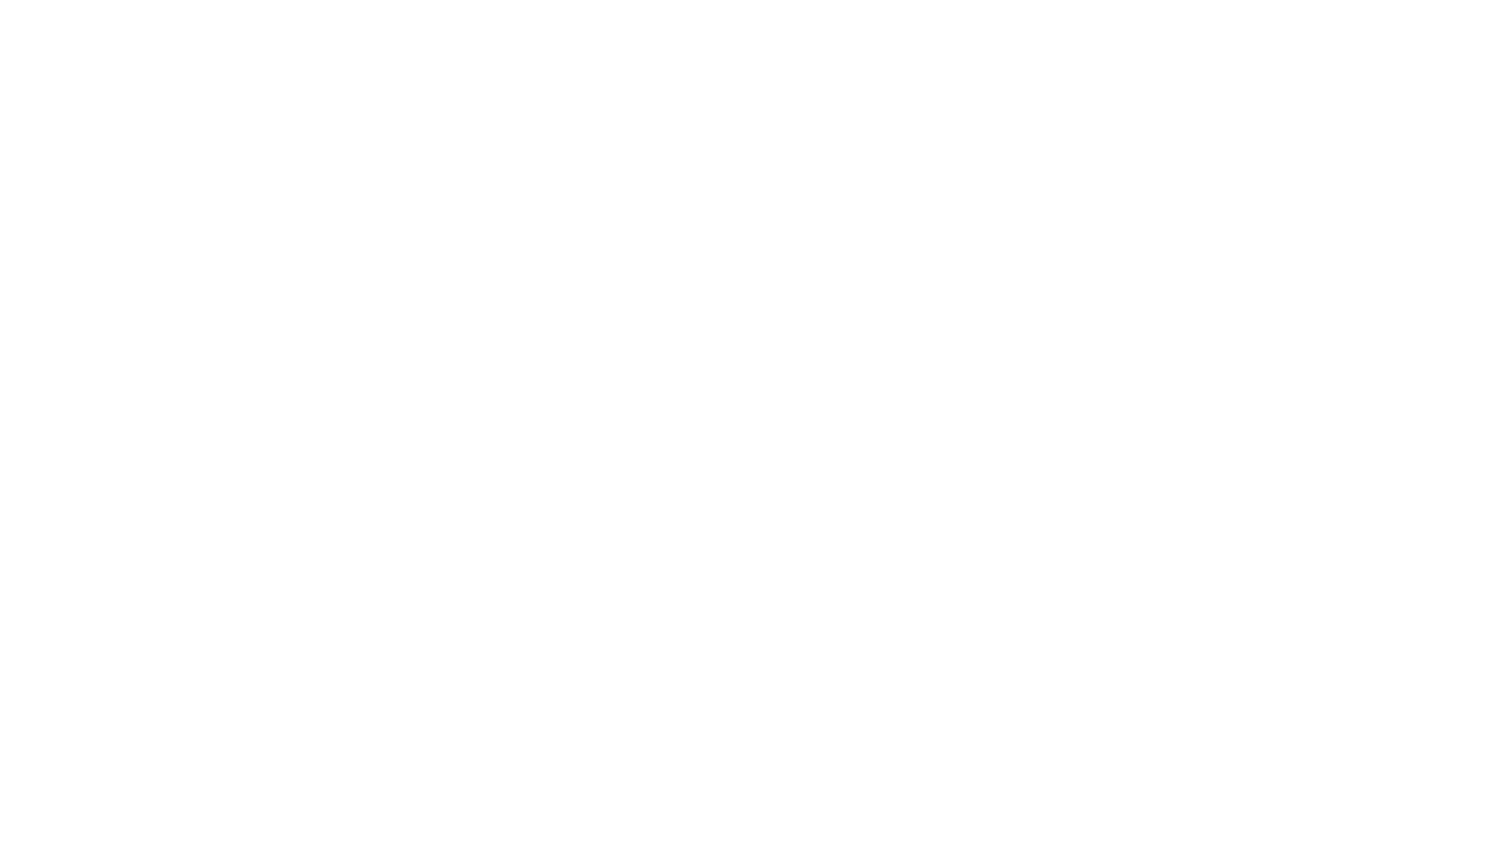 Valley Man Photography